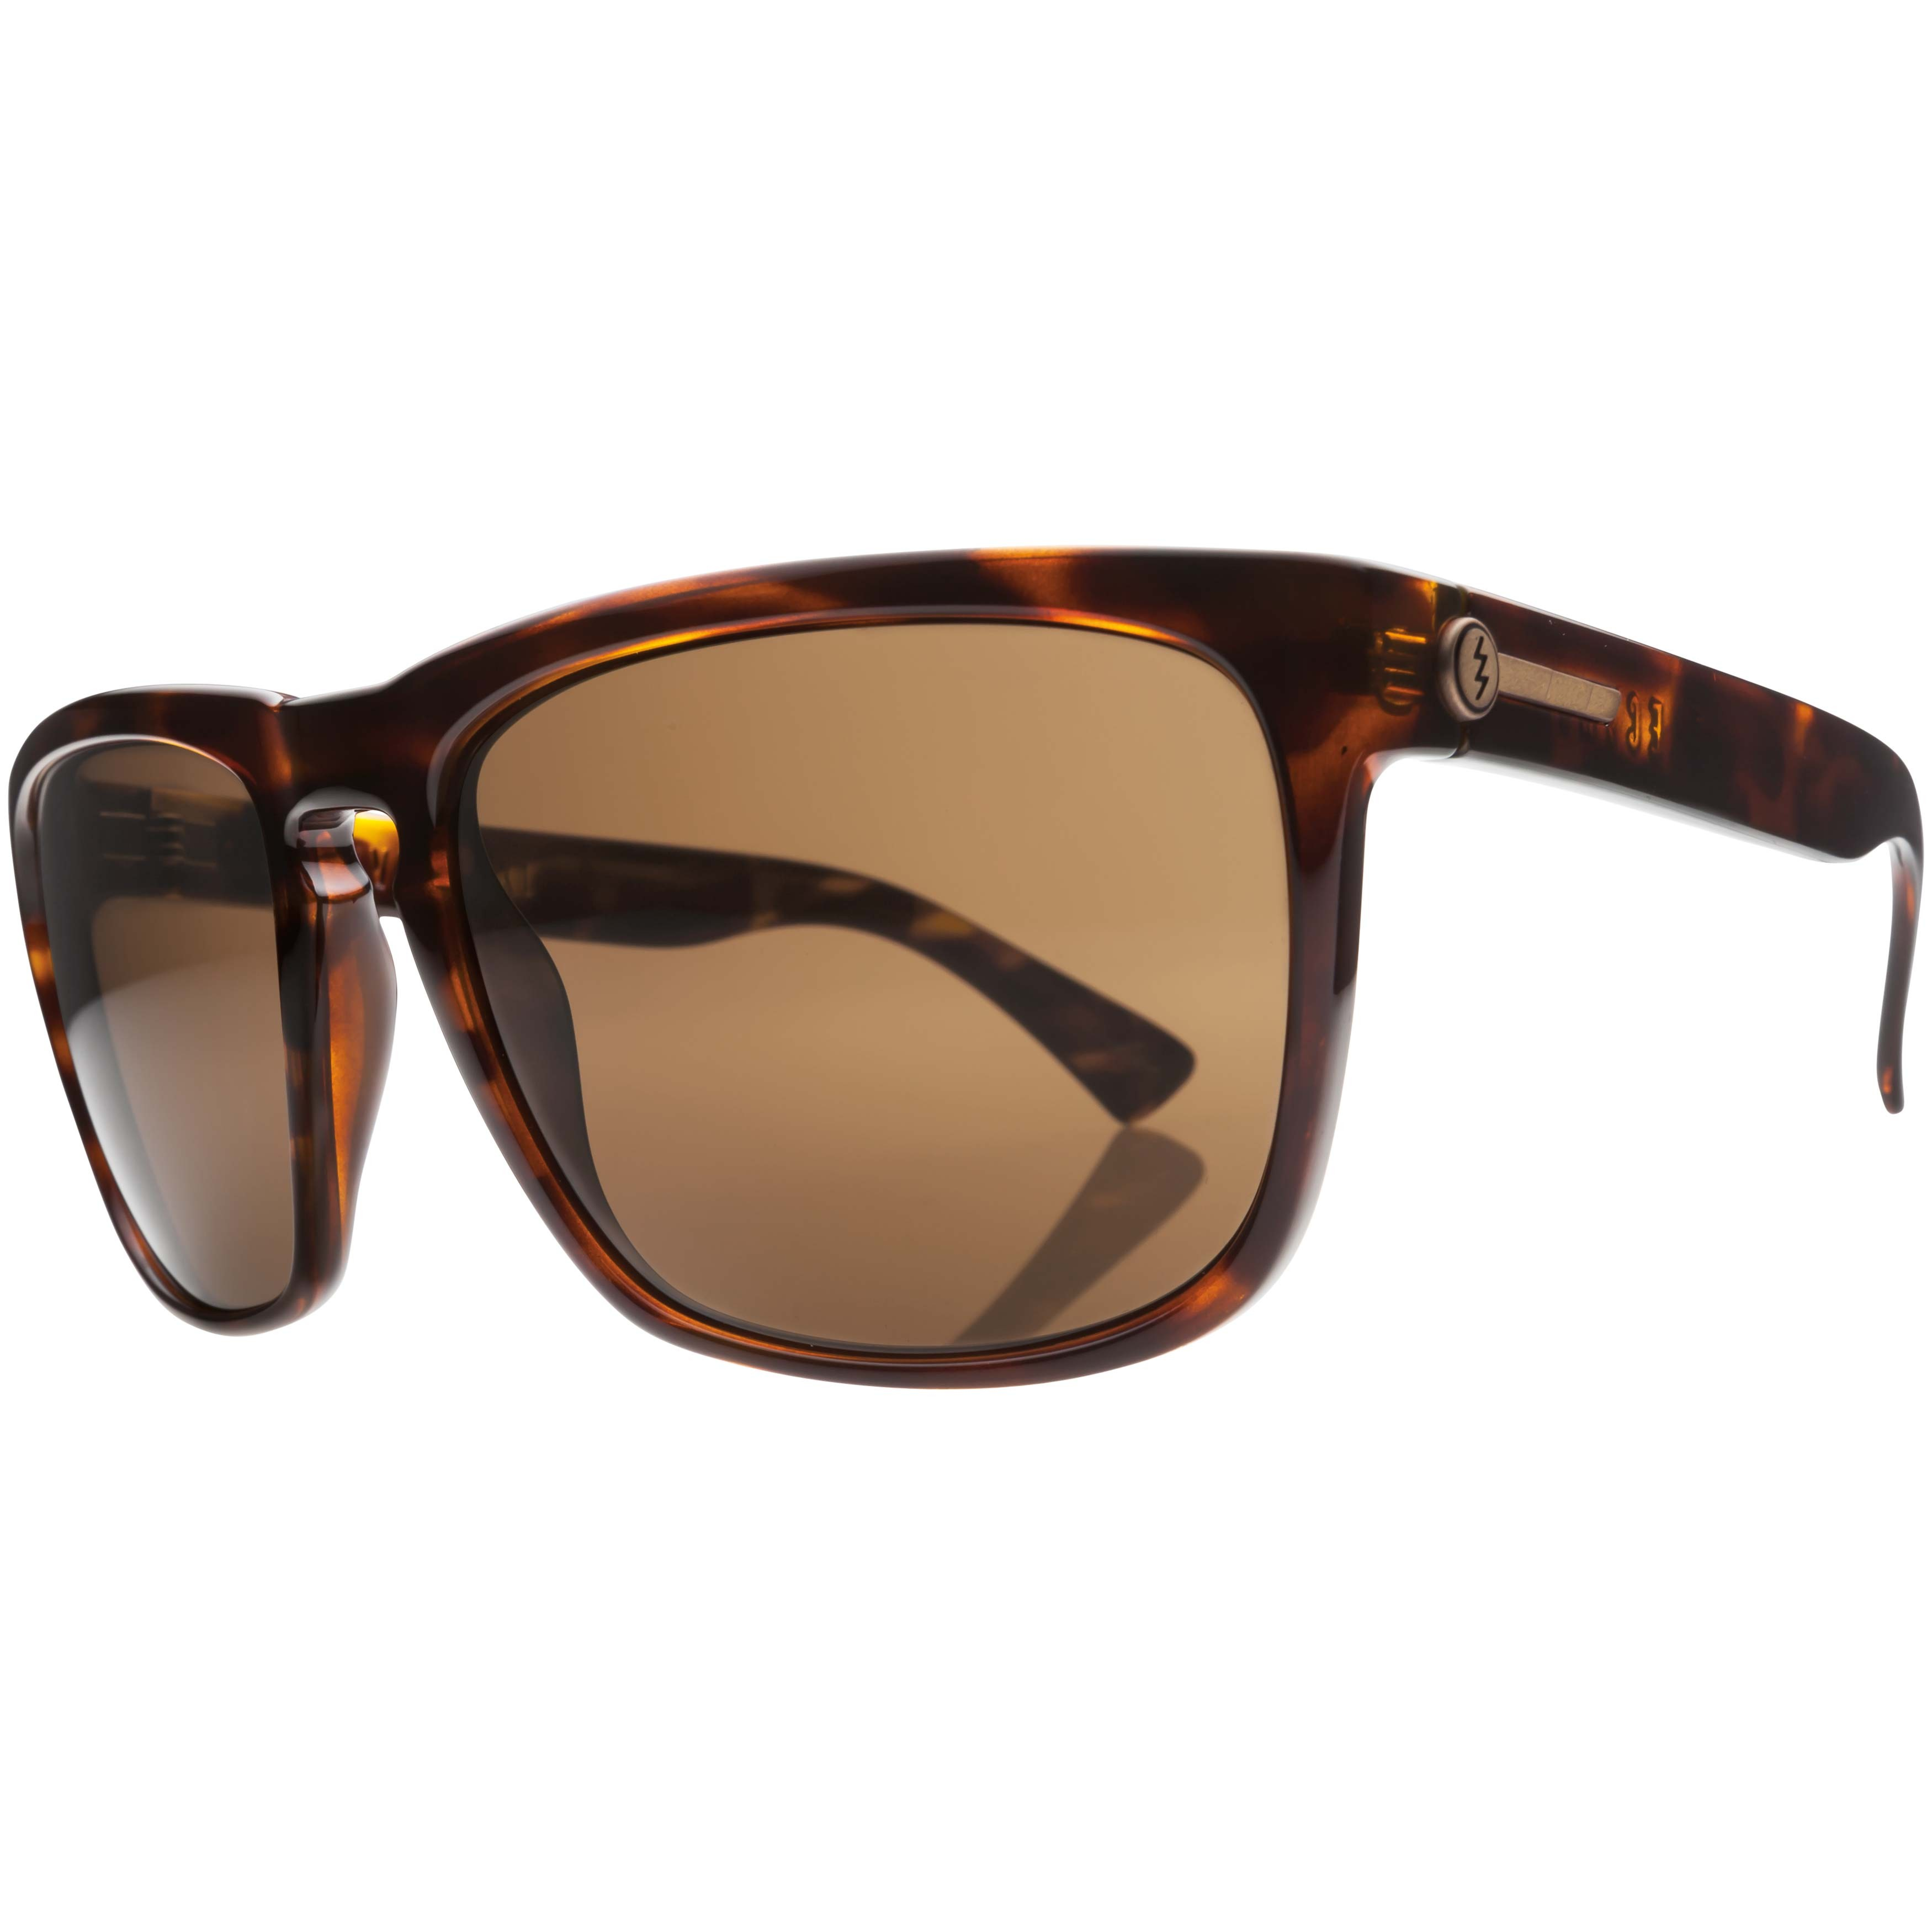 Electric Knoxville XL Sunglasses - Tortoise Shell/Bronze